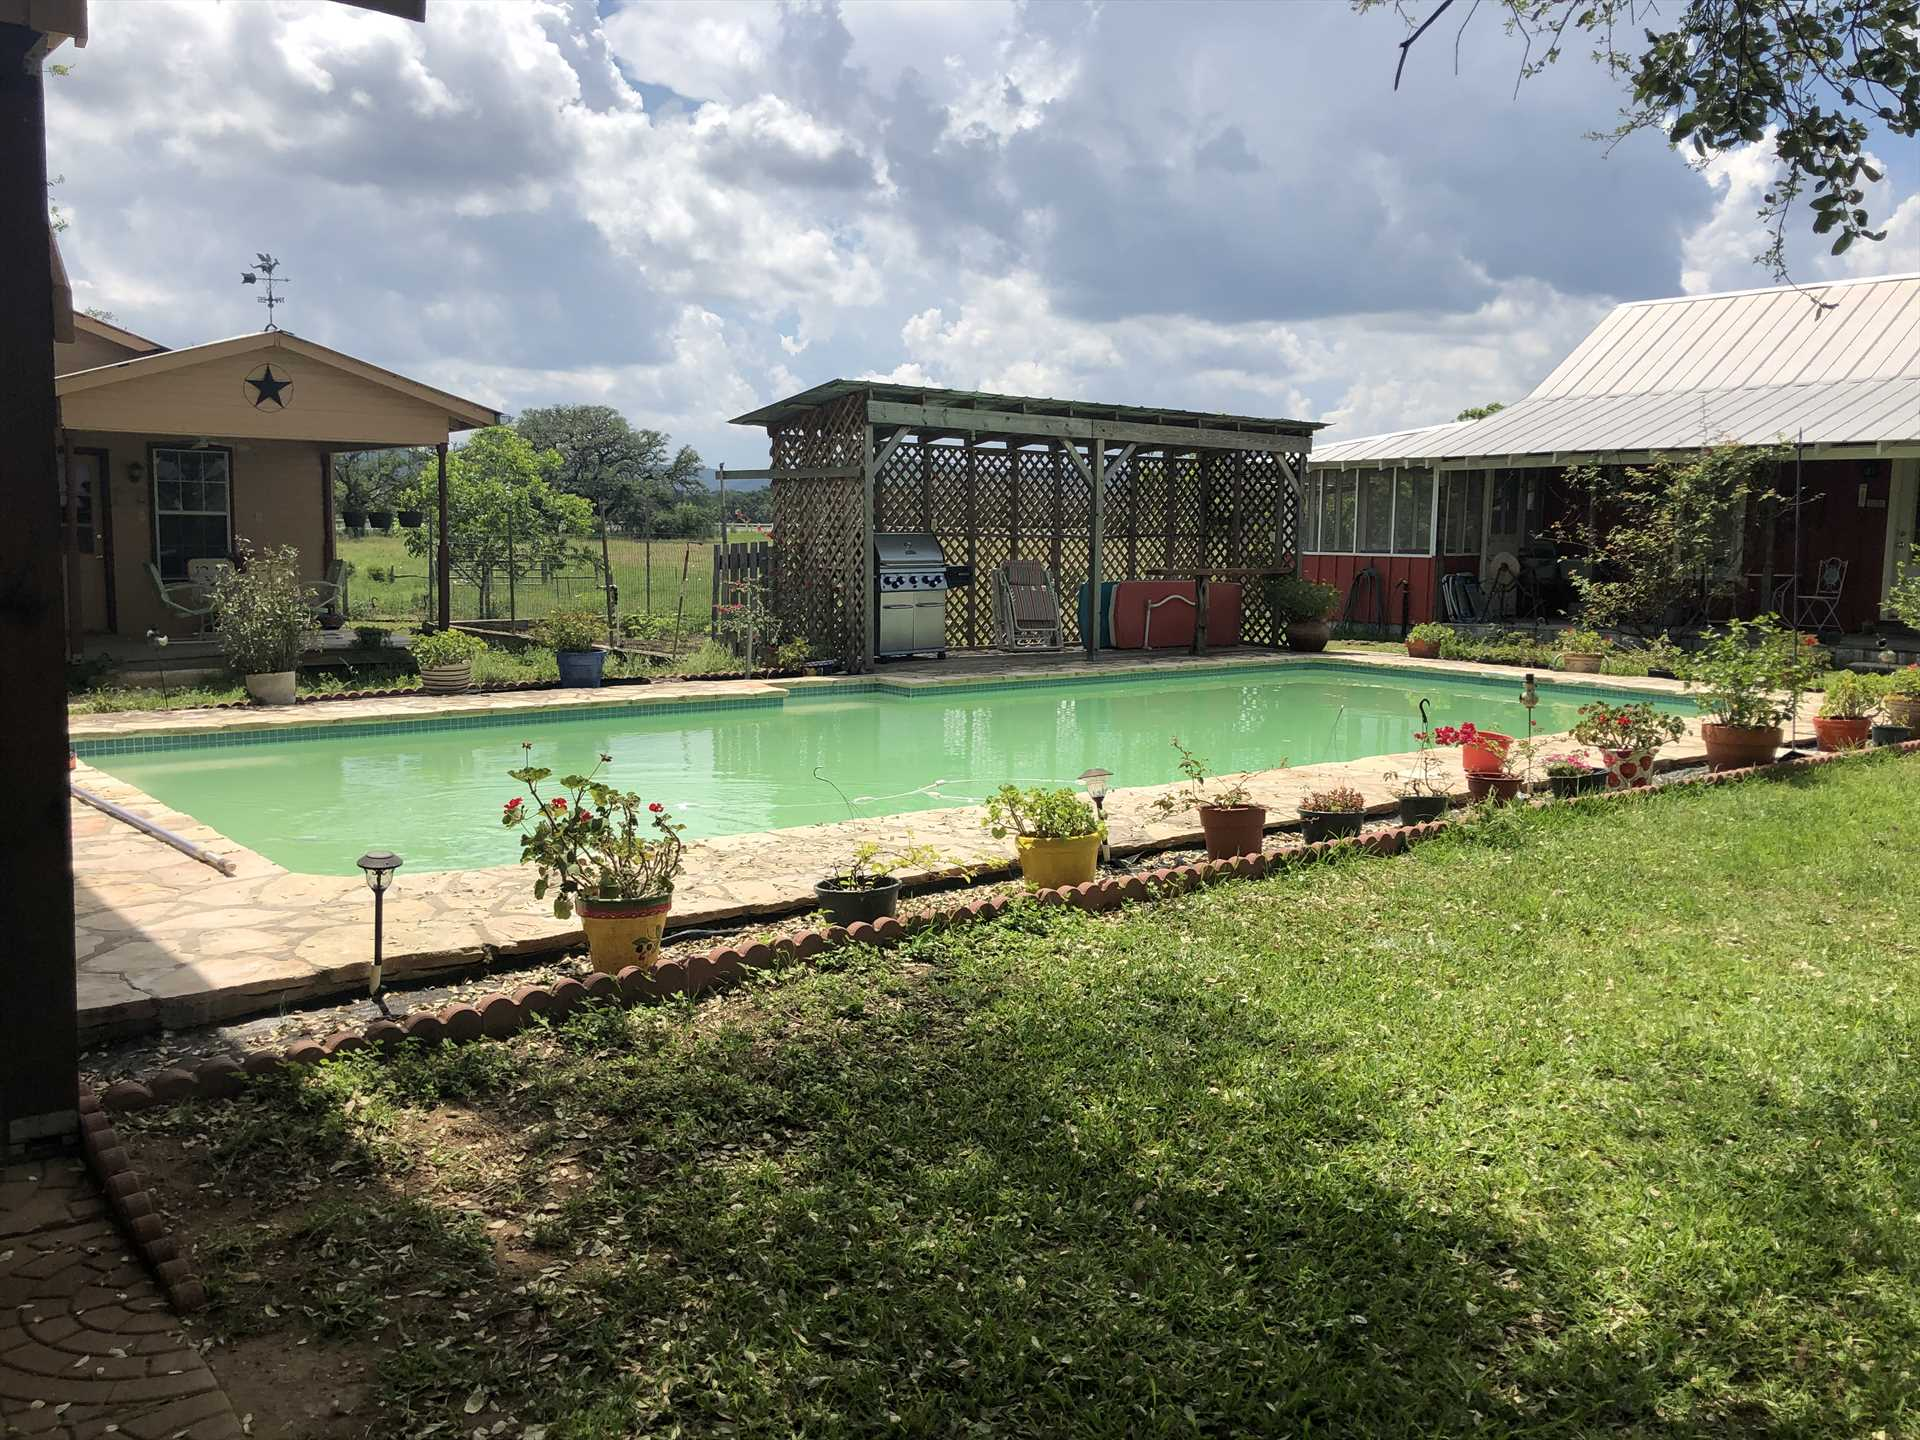 You'll have access to the swimming pool at the main house-the perfect place to take the edge off those hot Texas summers!